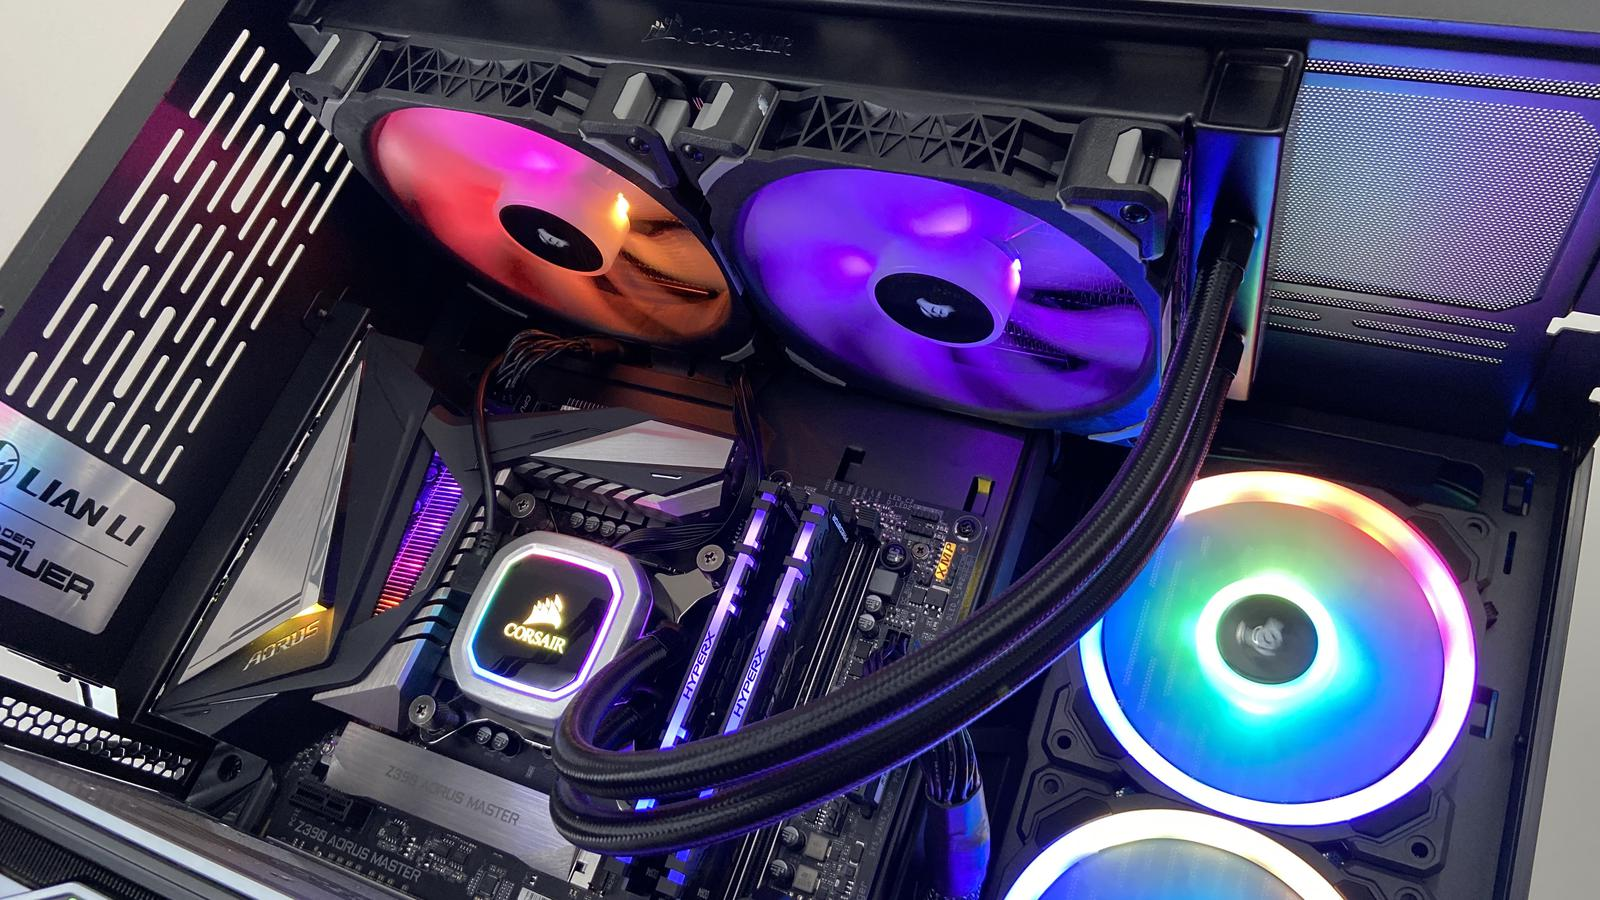 The Corsair H115I comes with RGB fans. (Photo by XenonGX at PCPP) by